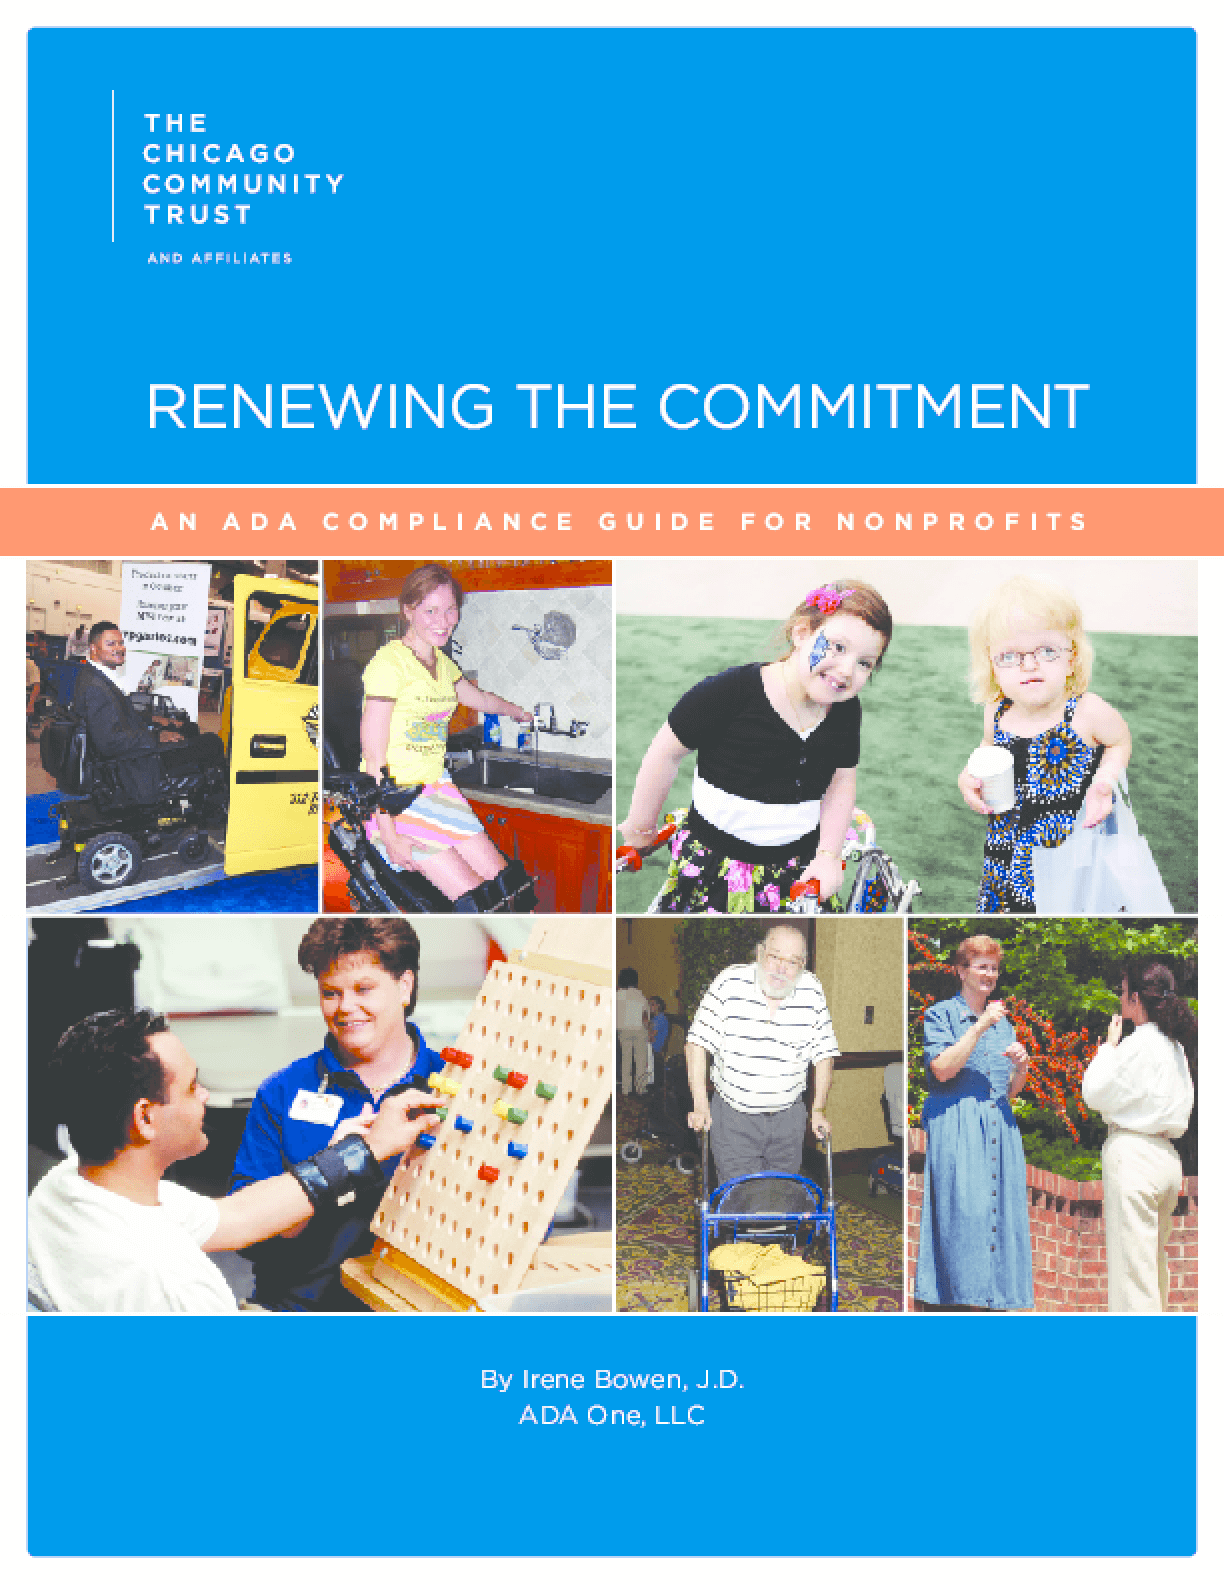 Renewing the Commitment: An ADA Compliance Guide for Nonprofits